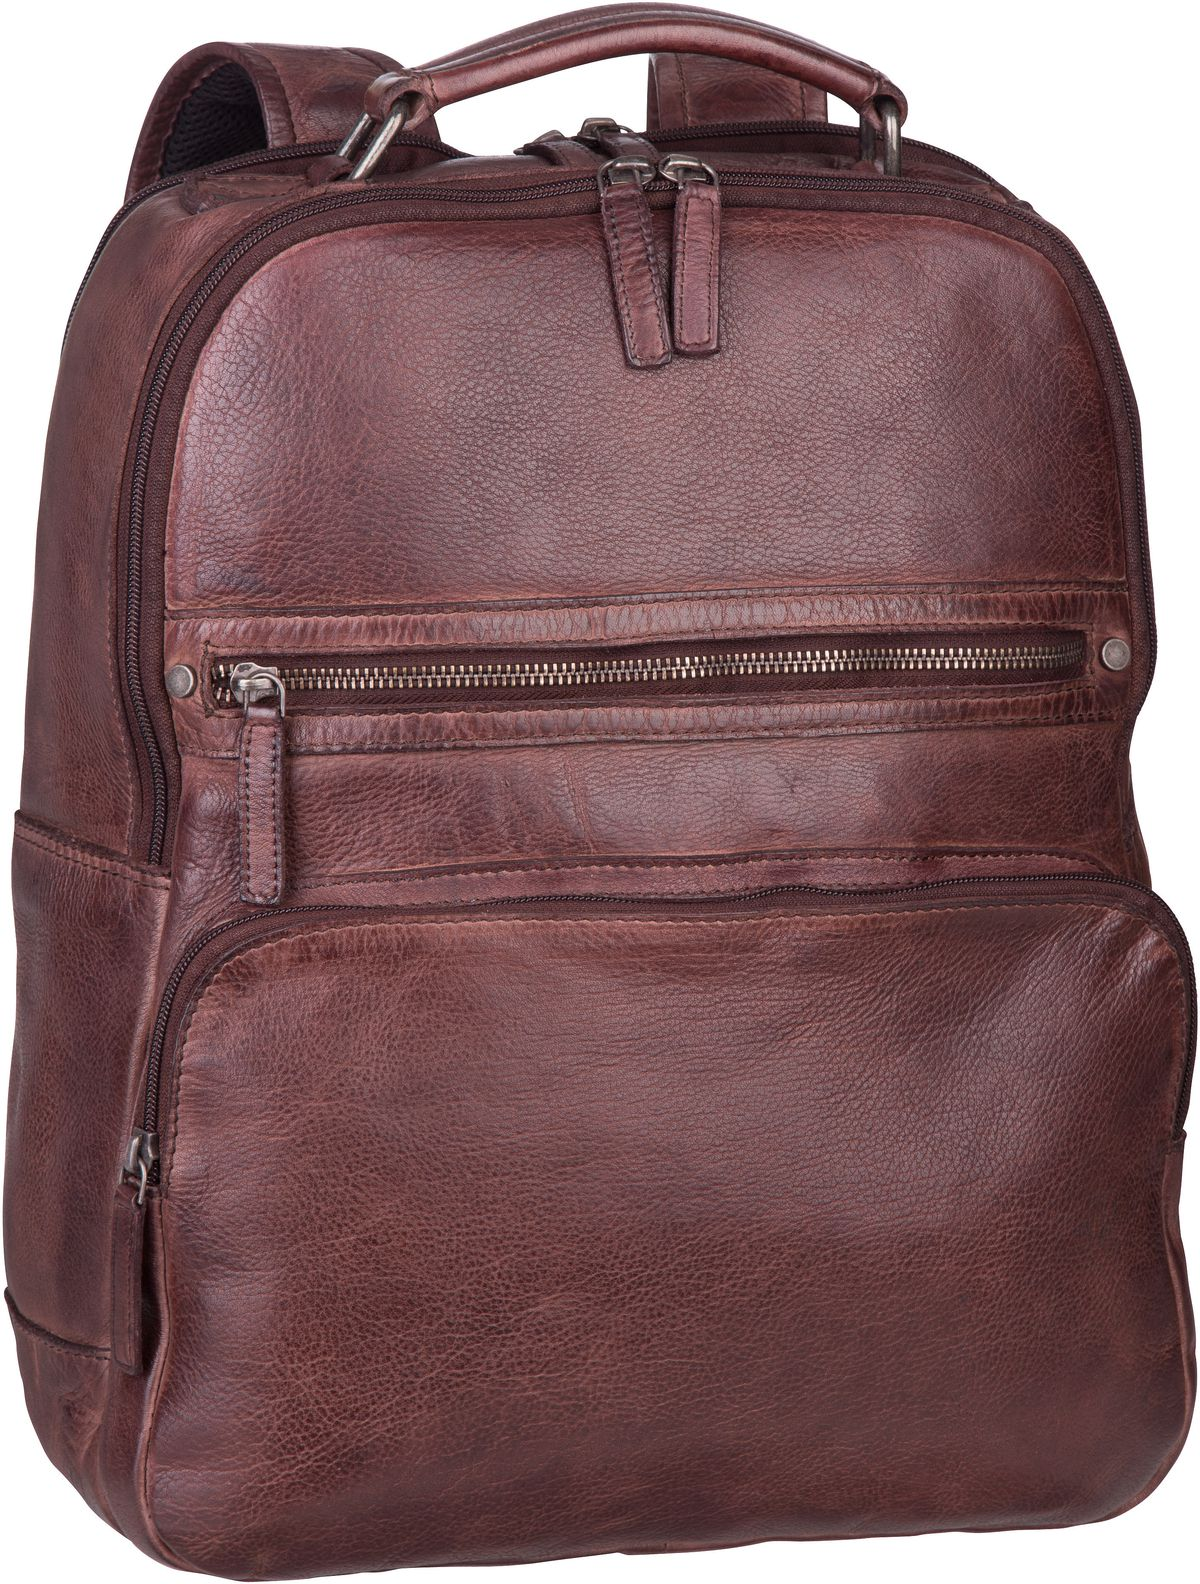 Rucksack / Daypack GBVT Washed 2909 Office Backpack Coffee